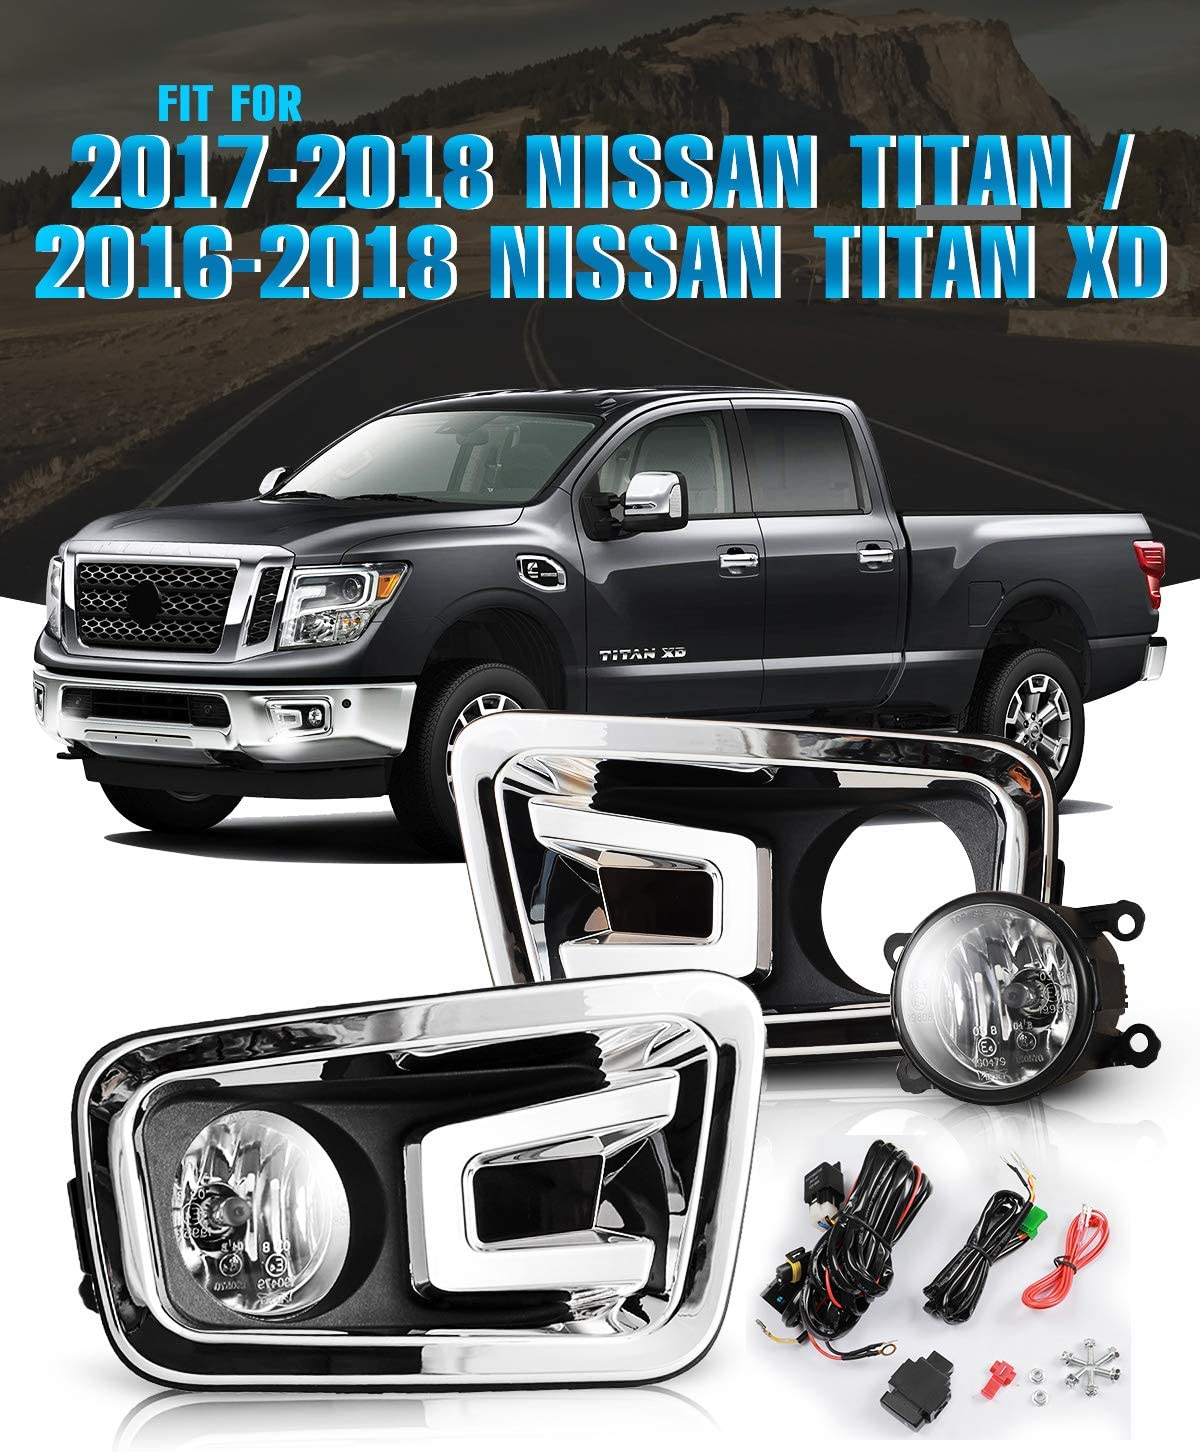 Smoke Lens AUTOFREE Fog Lights Compatible with 2017-2018 Titan /& 2016-2019 Titan XD with Bulbs H11 12V 55W Driving Lamp Replacement Included Wiring Kit /& Switch-1 Pair